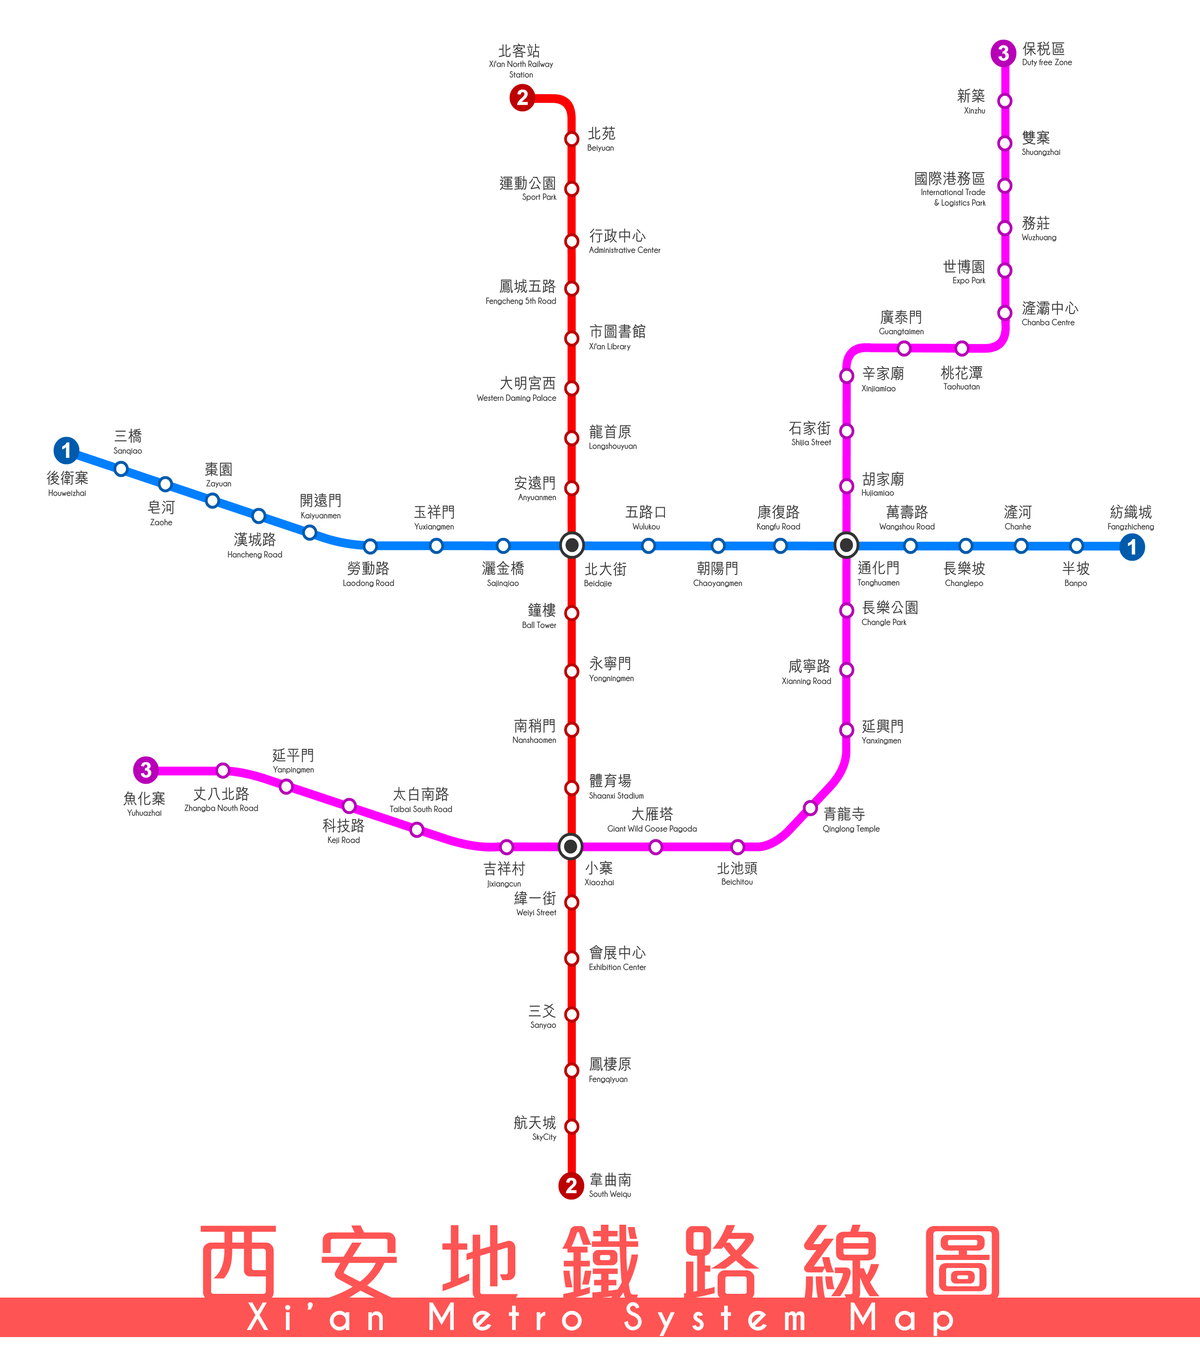 Xi'an Metro - Wikipedia